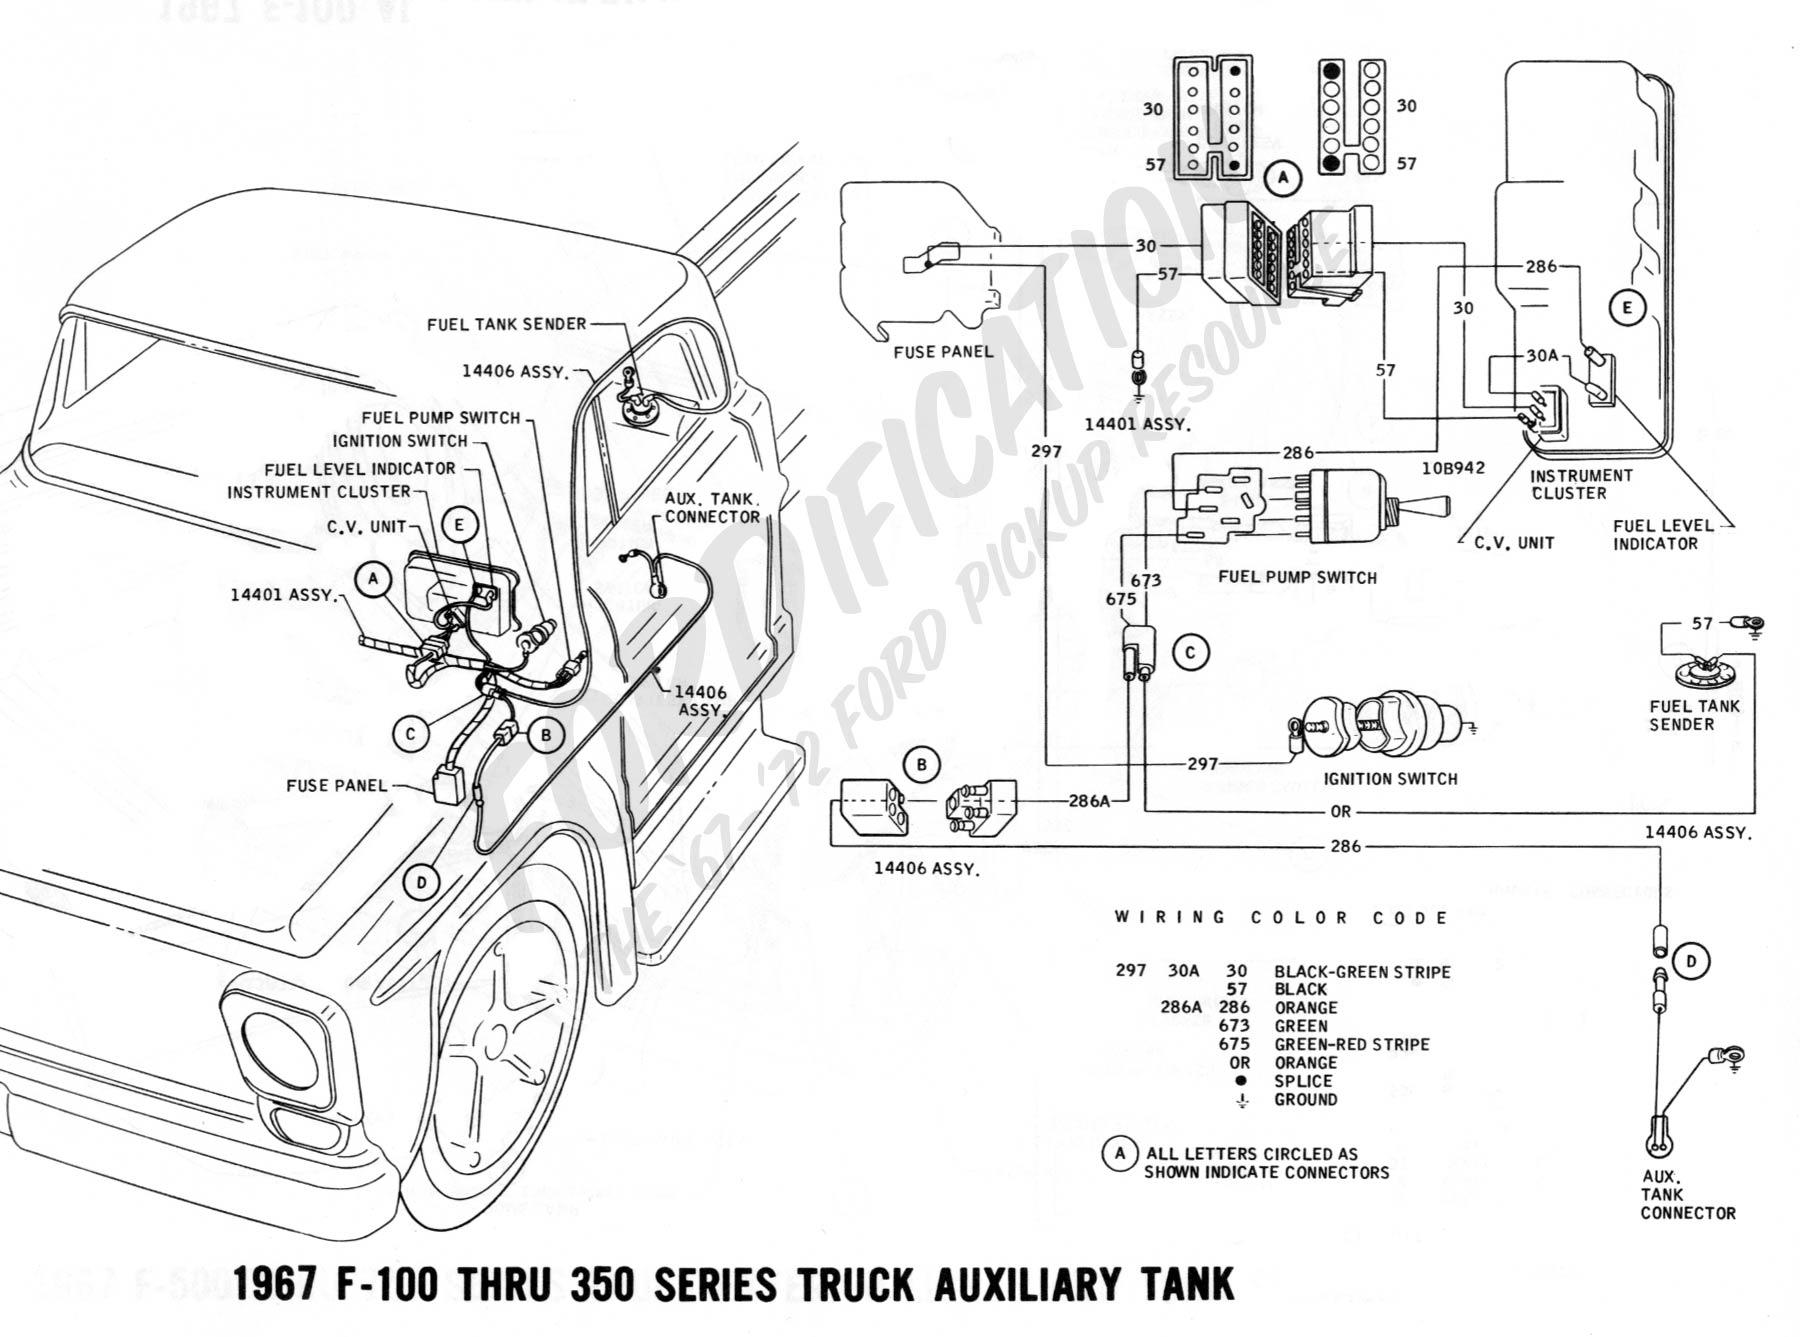 wiring 1967auxtank ford truck technical drawings and schematics section h wiring  at readyjetset.co